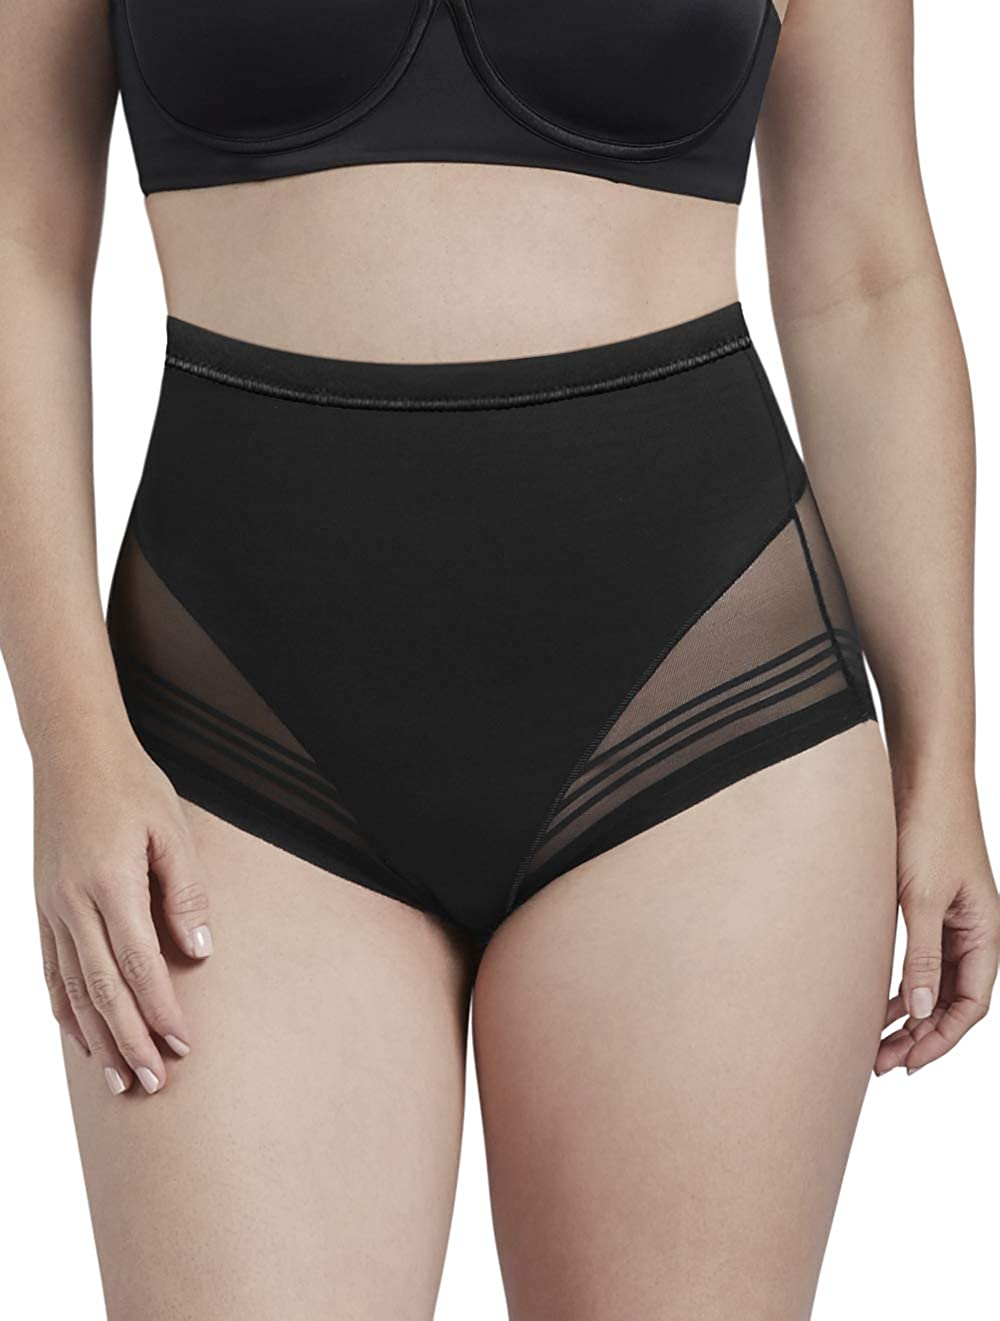 CURVEEZ Control Briefs Womens Panties. A Waist Slimmer Compression Underwear